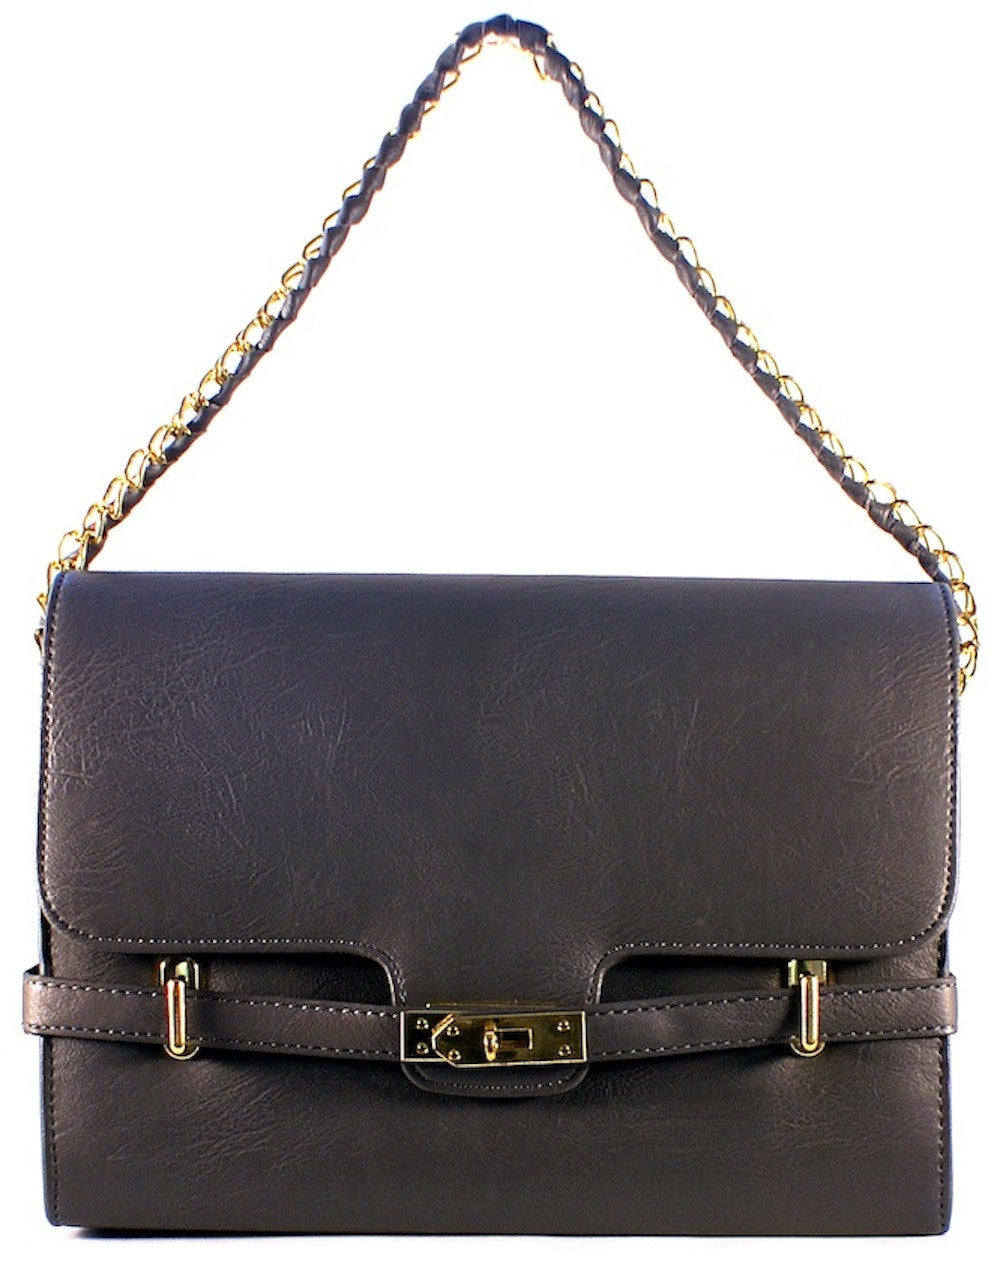 Black Small Handbag